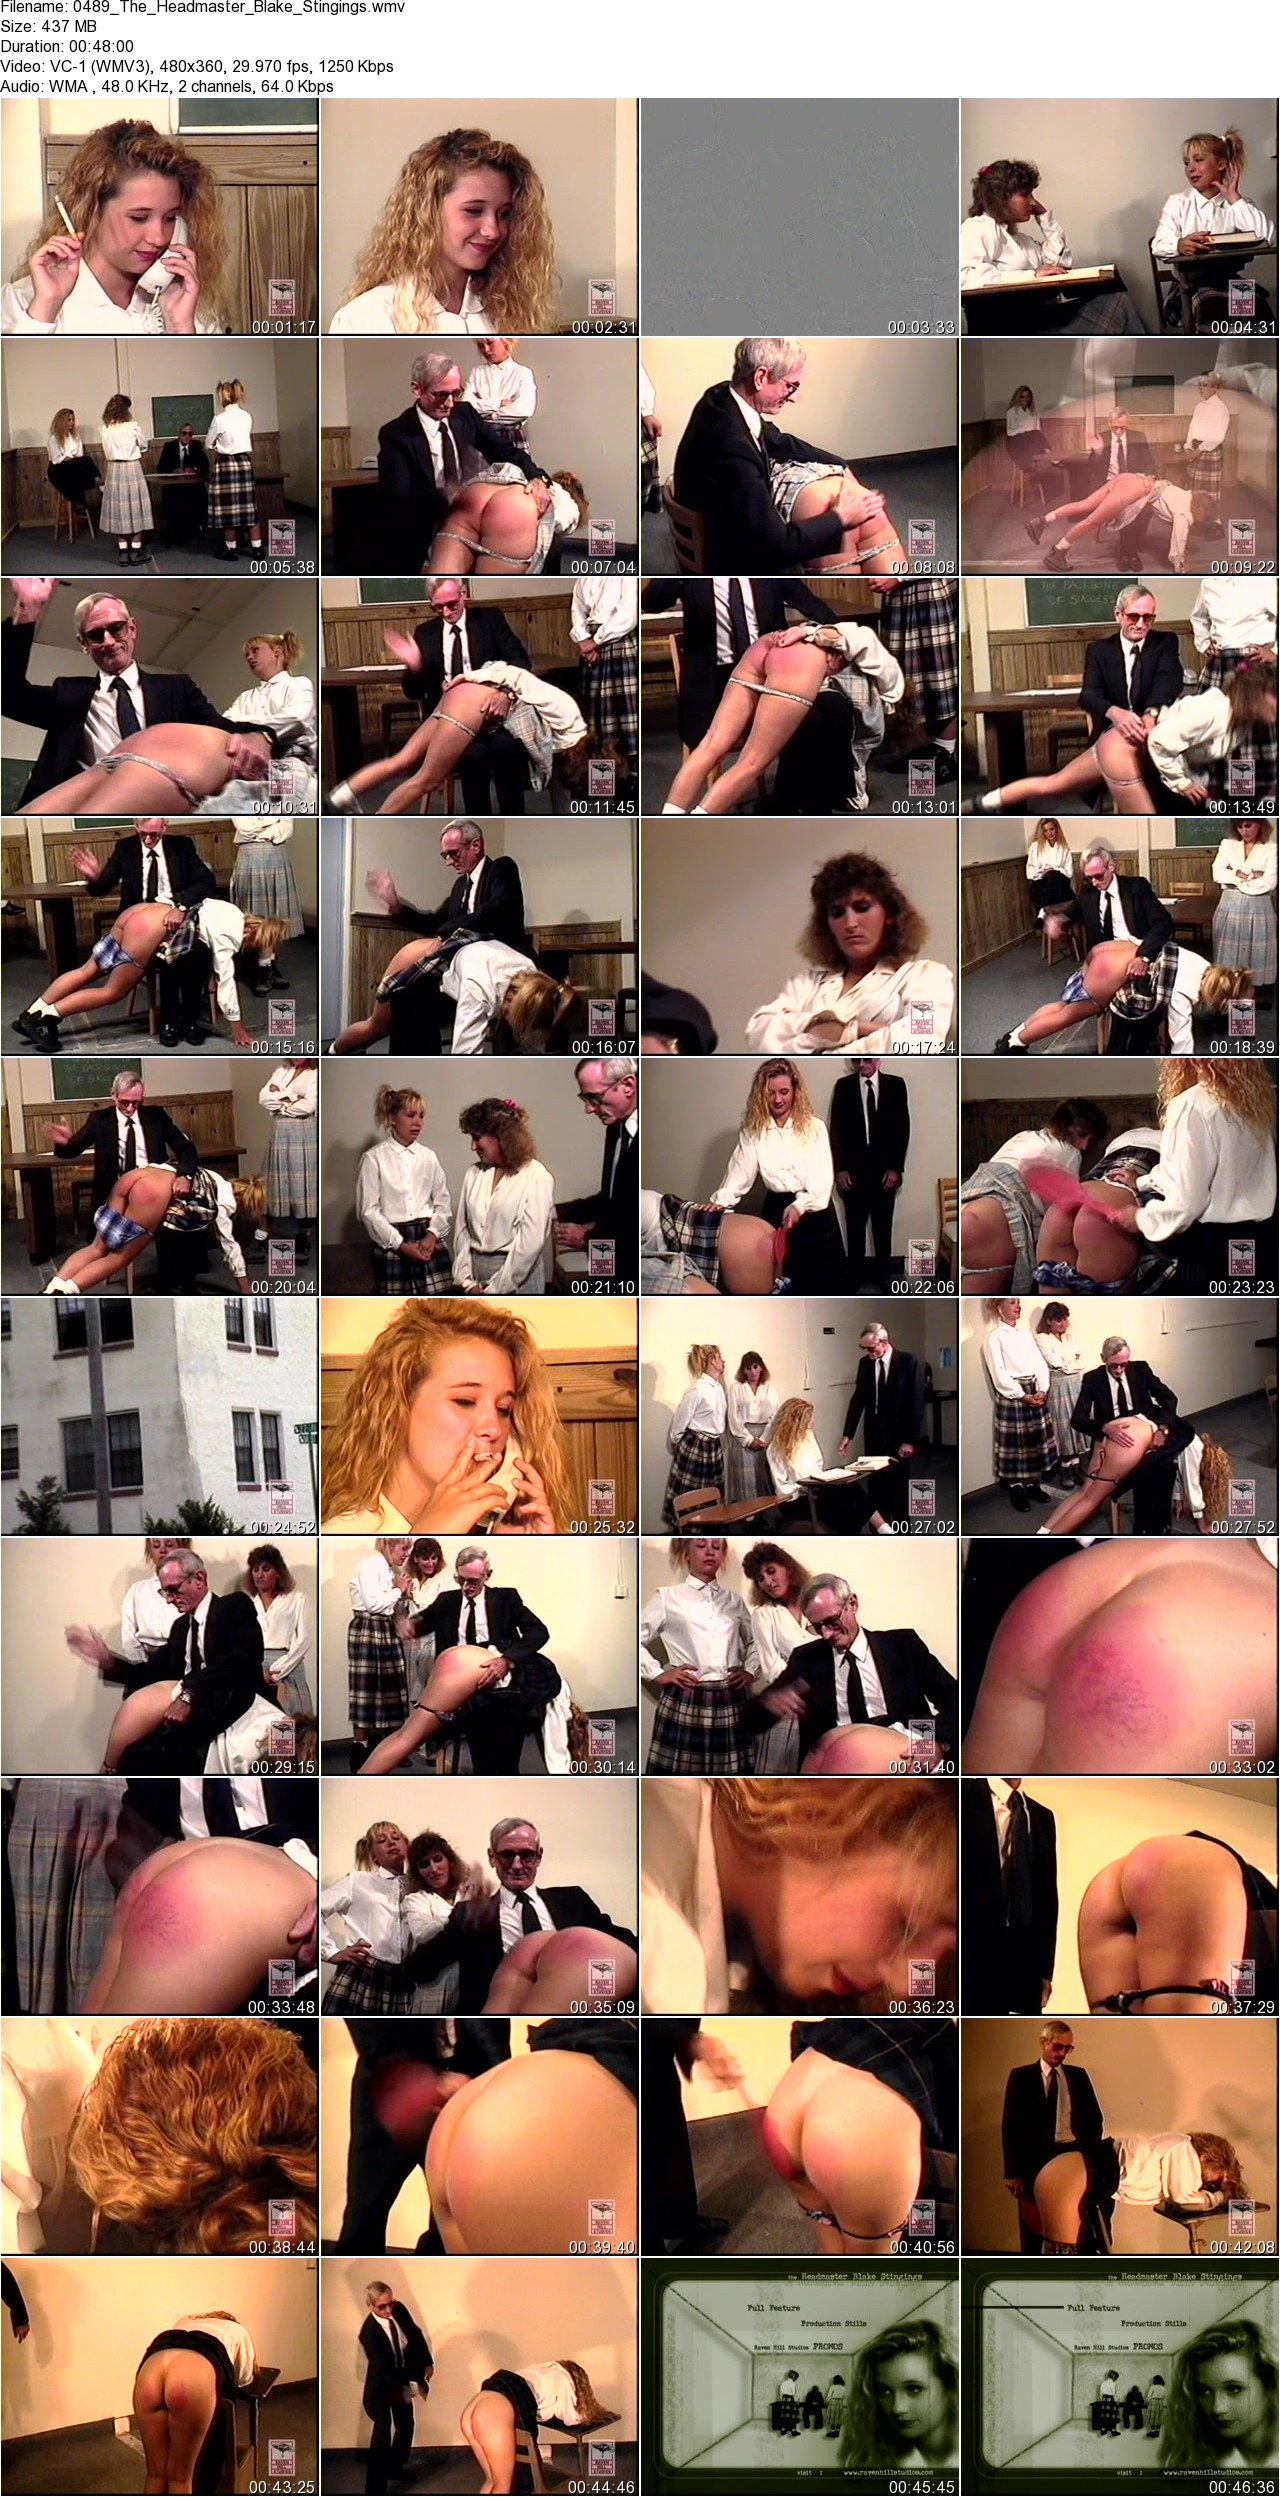 0489_The_Headmaster_Blake_Stingings.bdsm.privatcat.com,